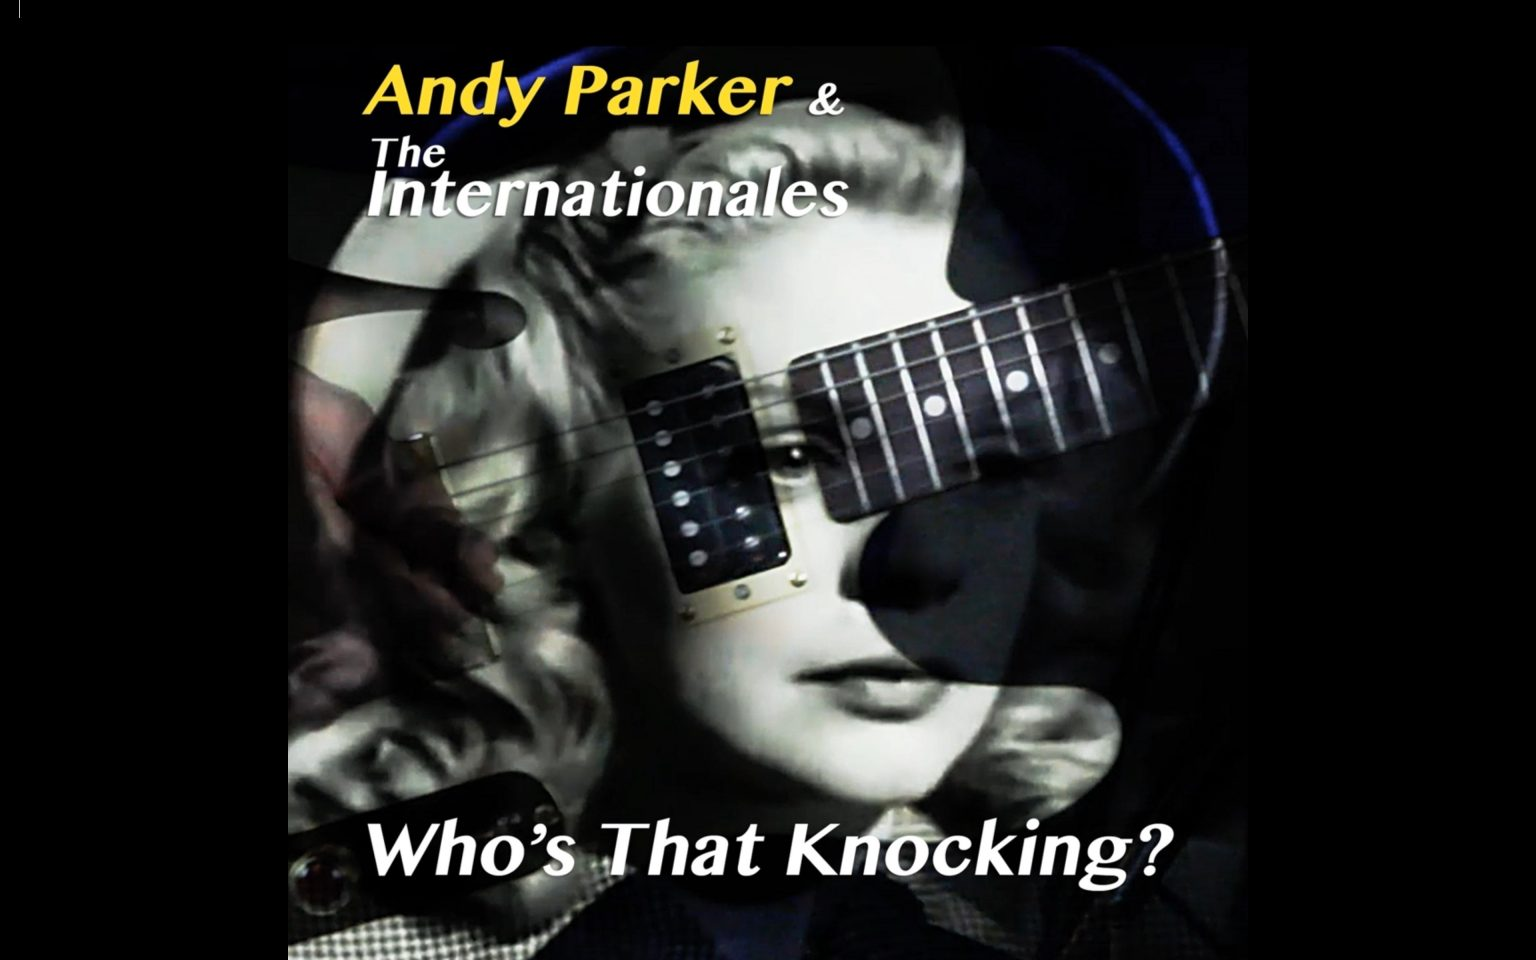 Andy Parker and the Internationales - Whos That Knocking